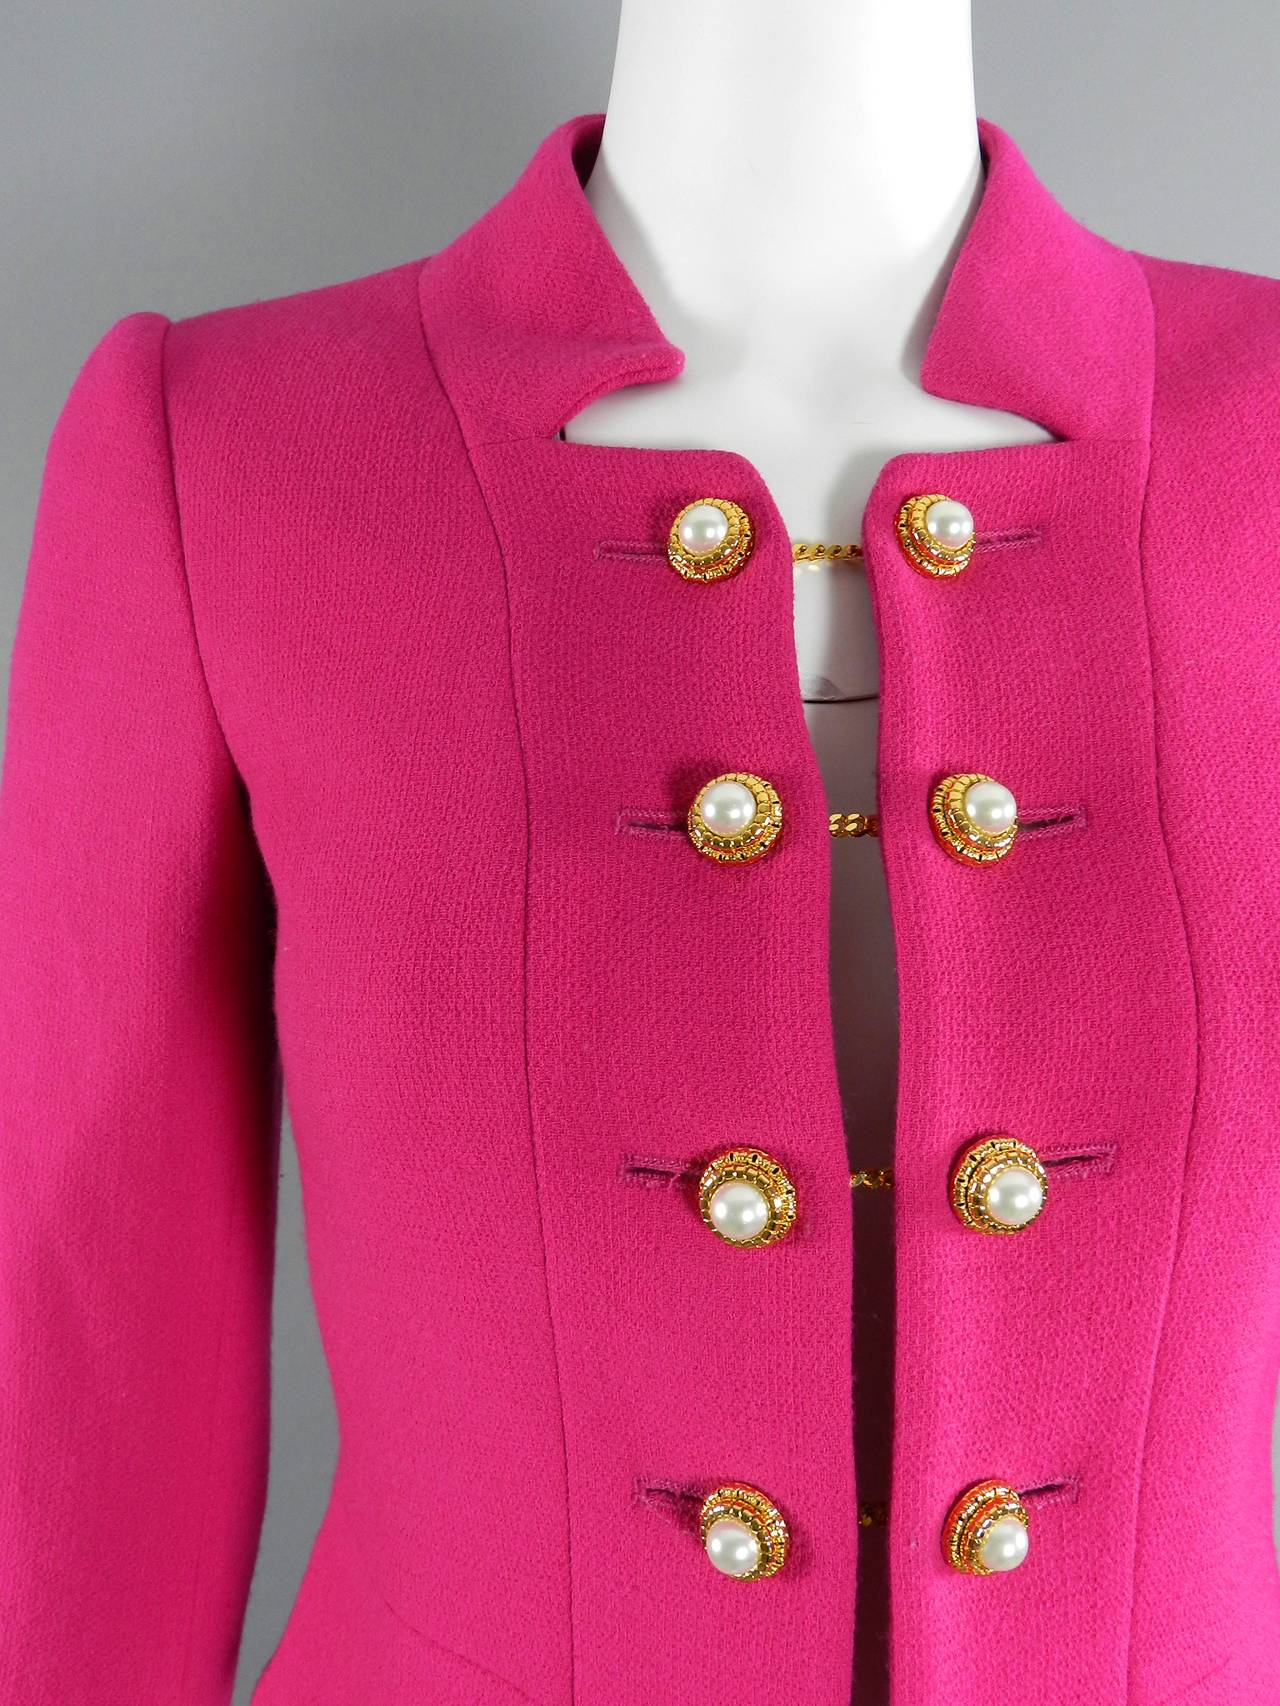 Moschino Hot Fuchsia Pink Jacket with Gold and Pearl Toggles 4